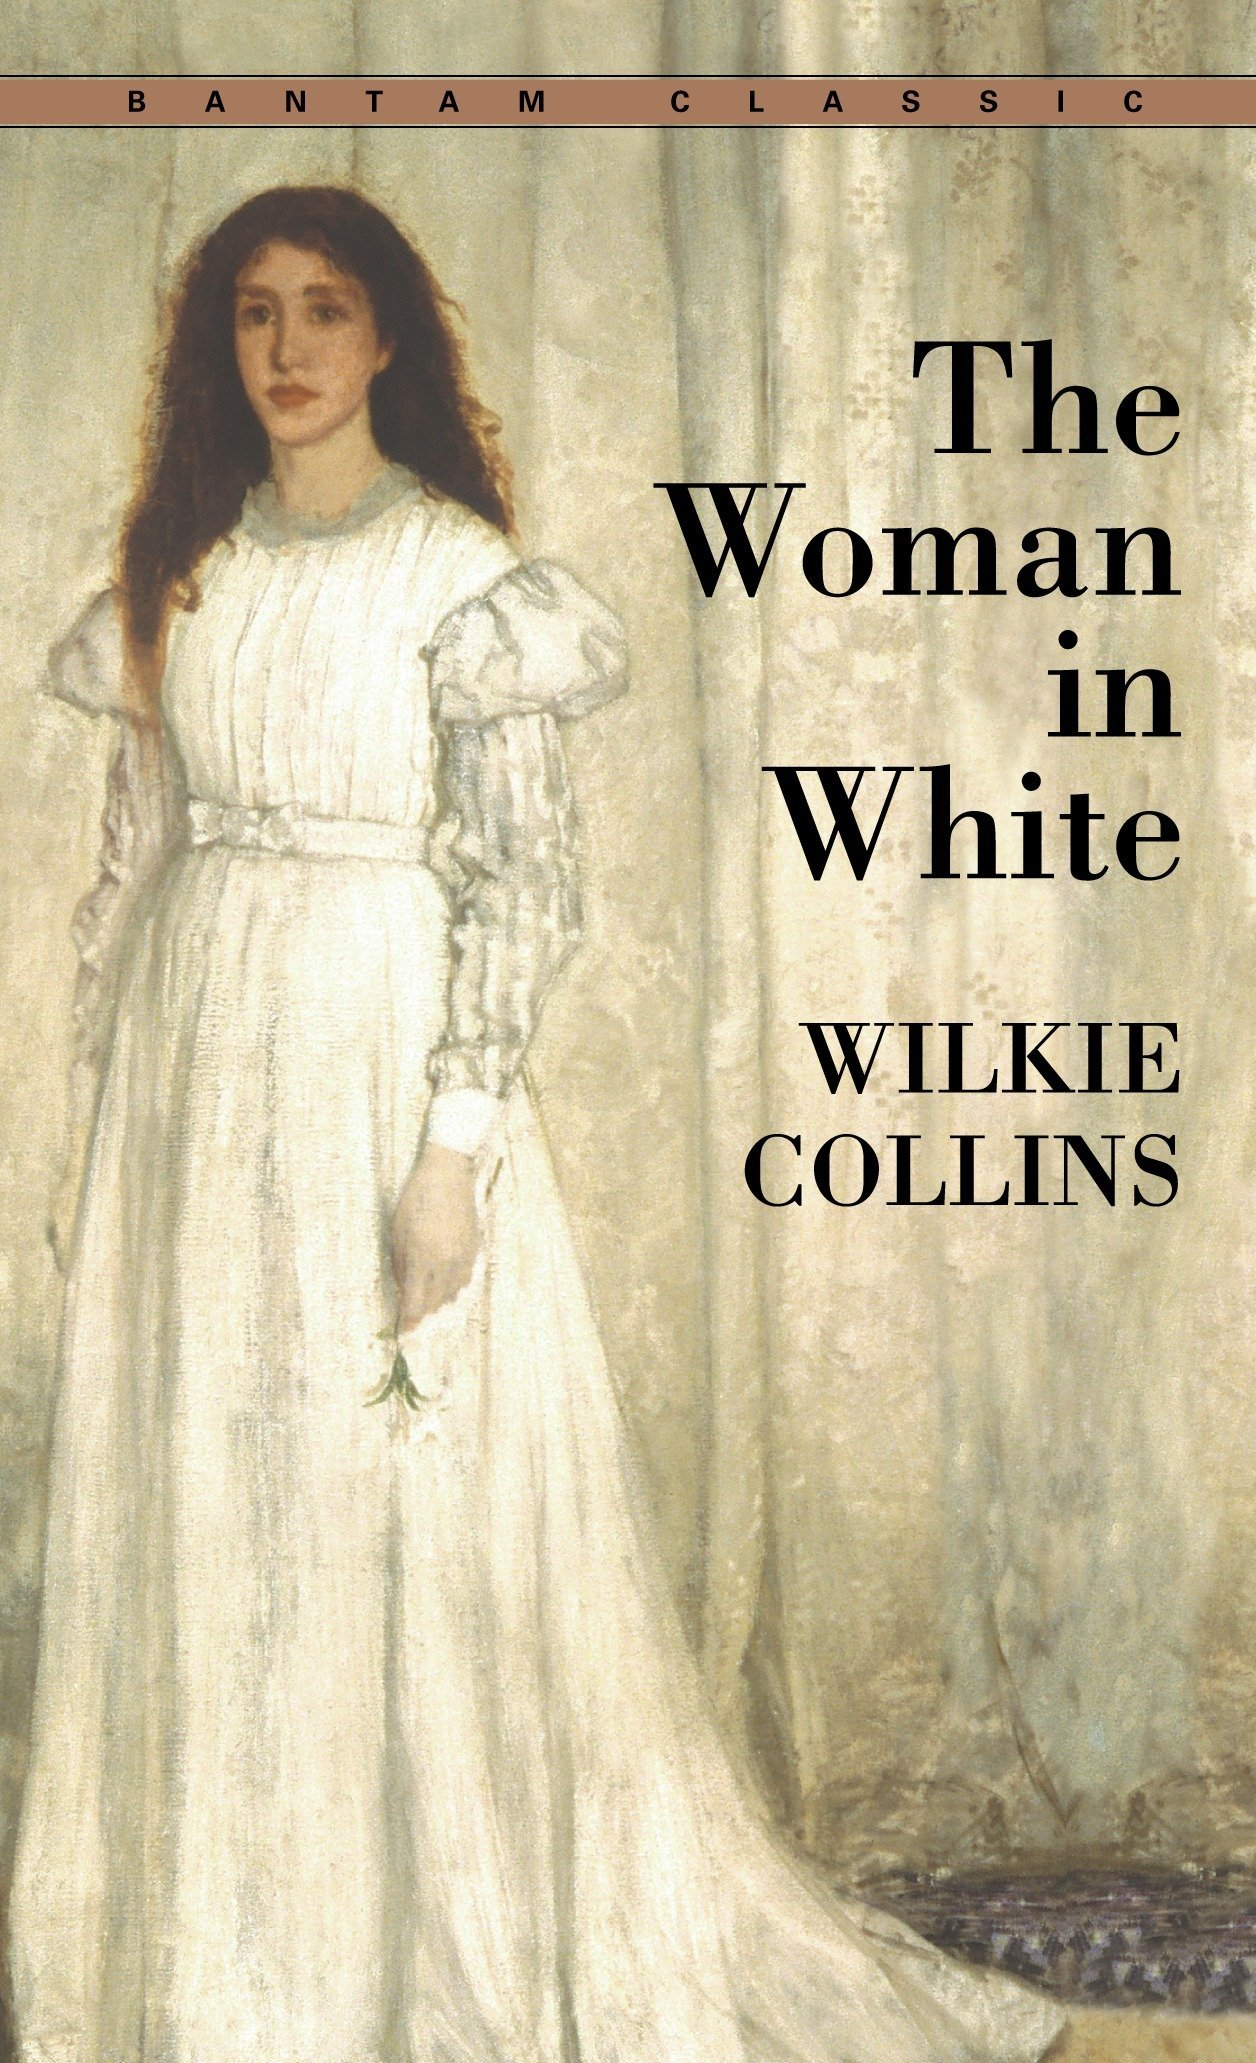 Forum on this topic: Woman in White, woman-in-white/